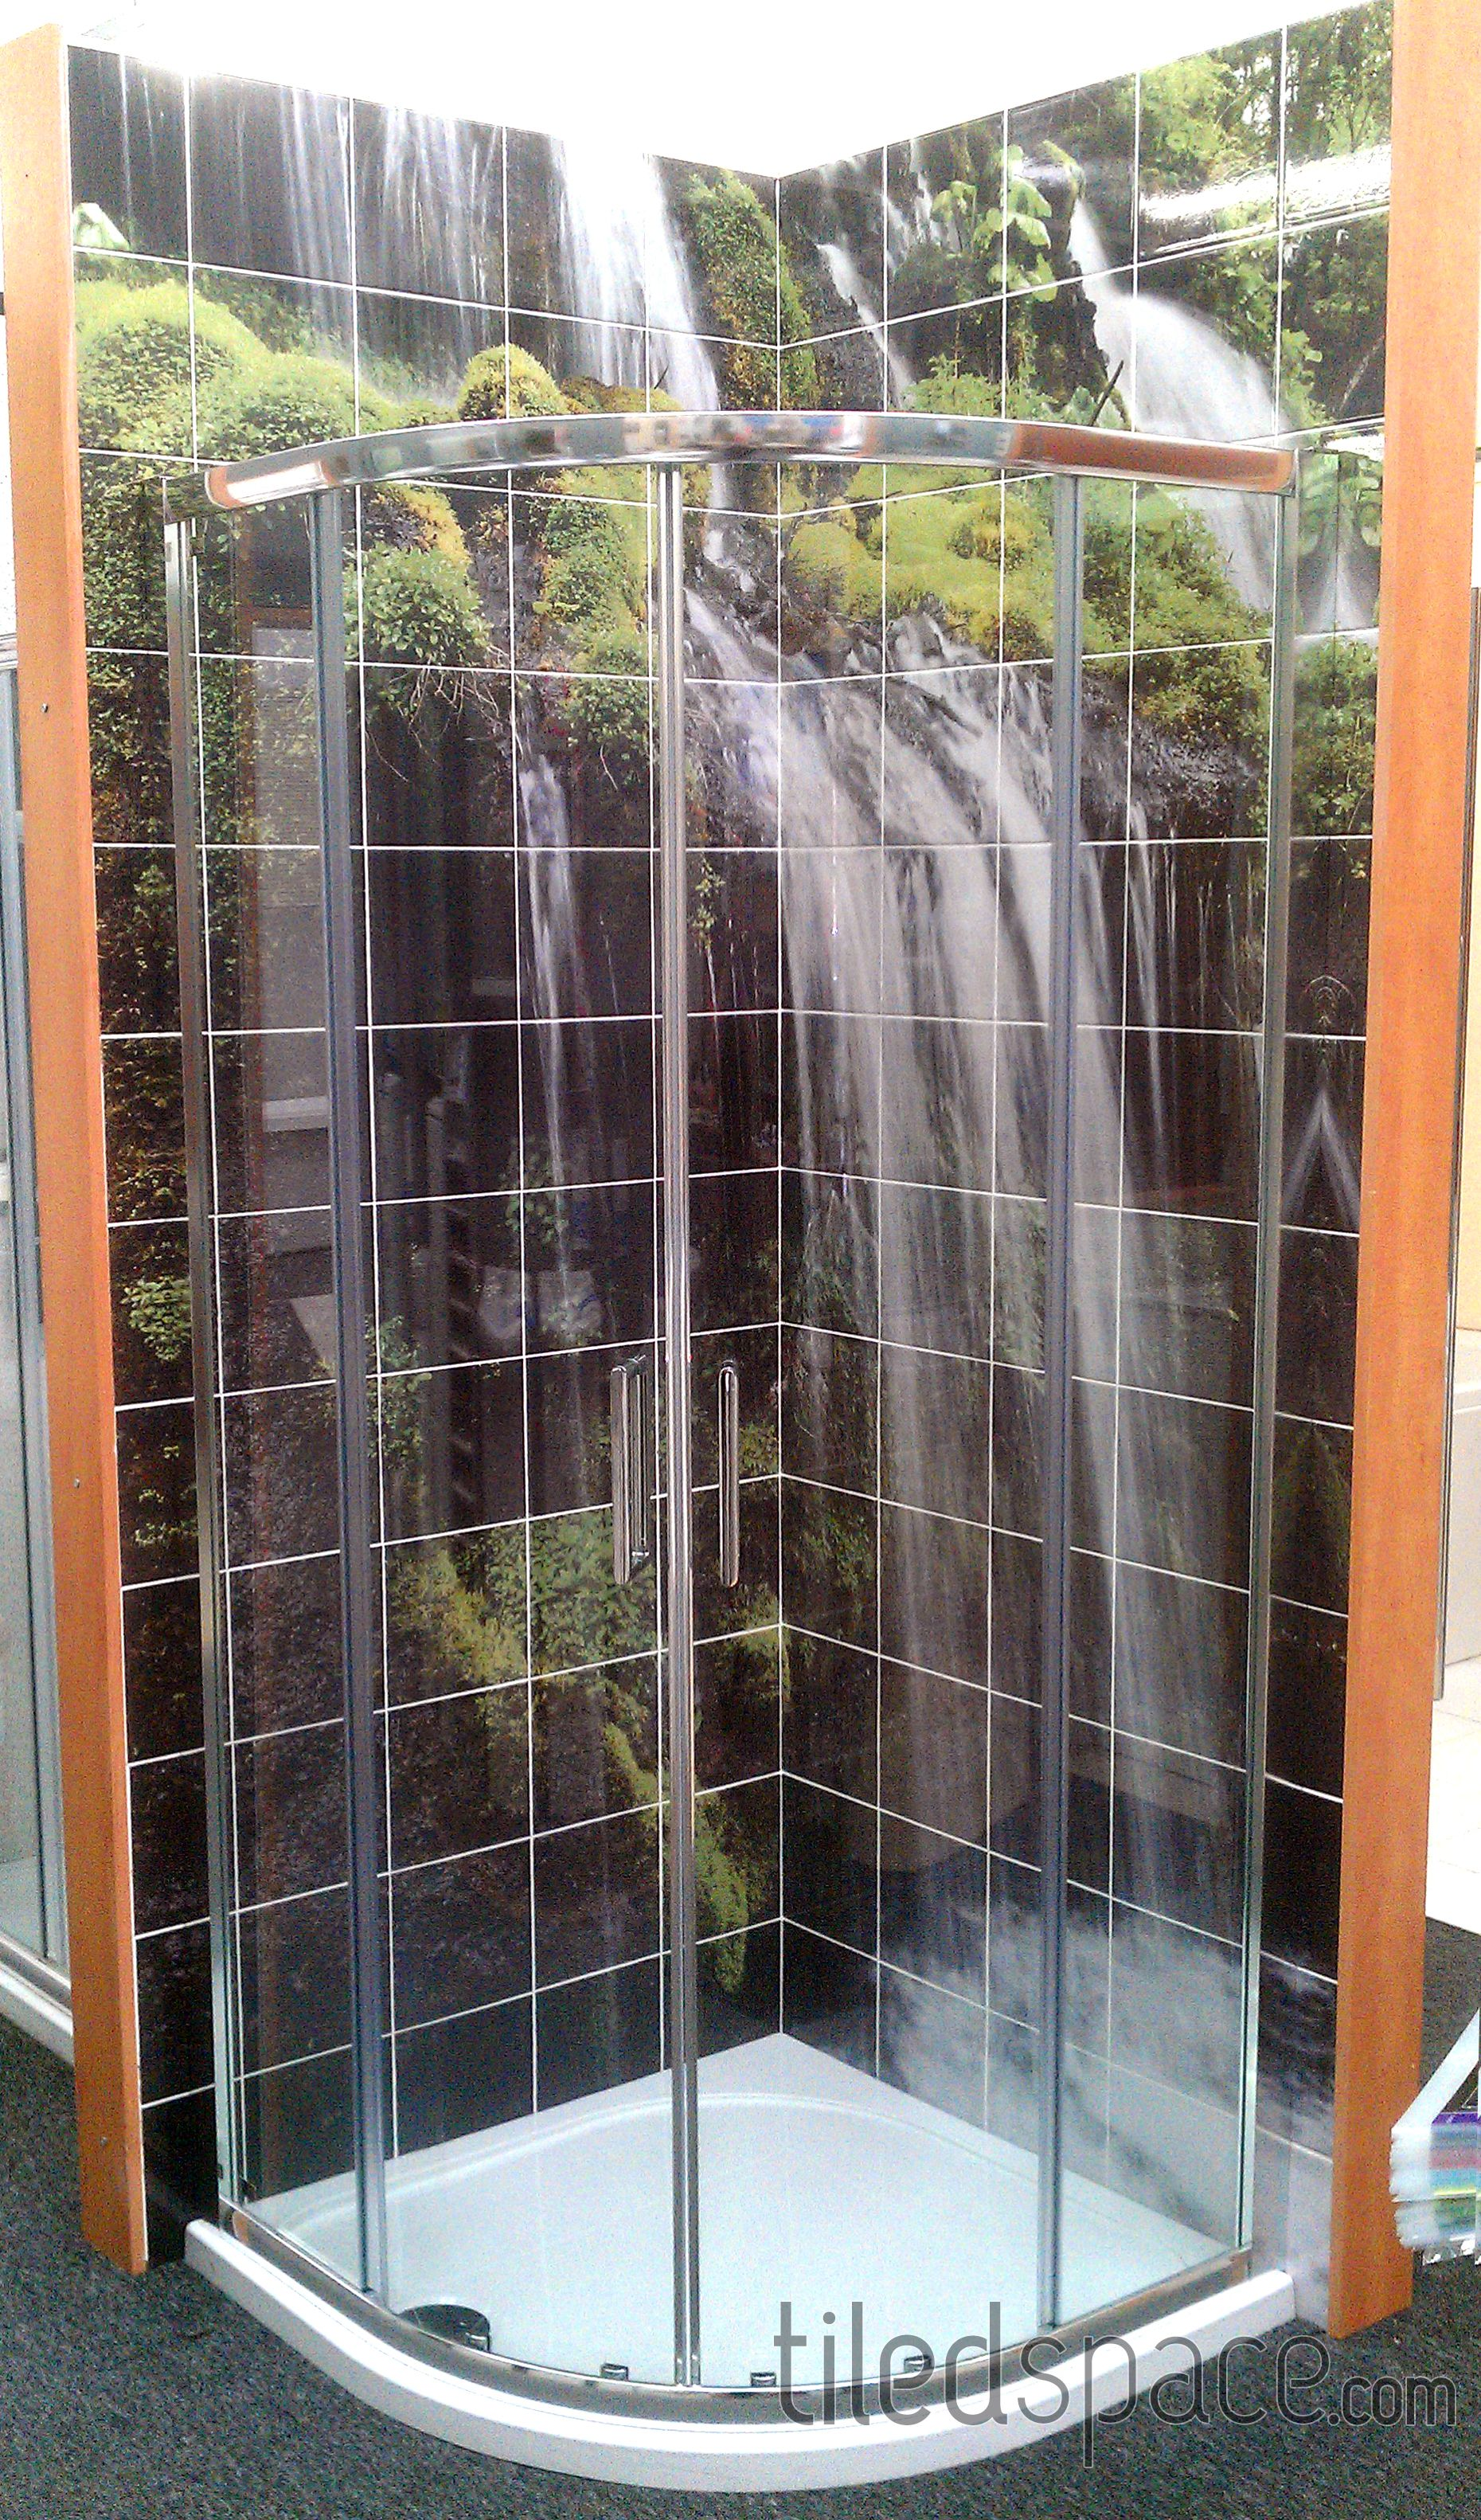 Waterfall Showers Designs Relaxing Waterfall Tiled Mural In Your Shower Dream